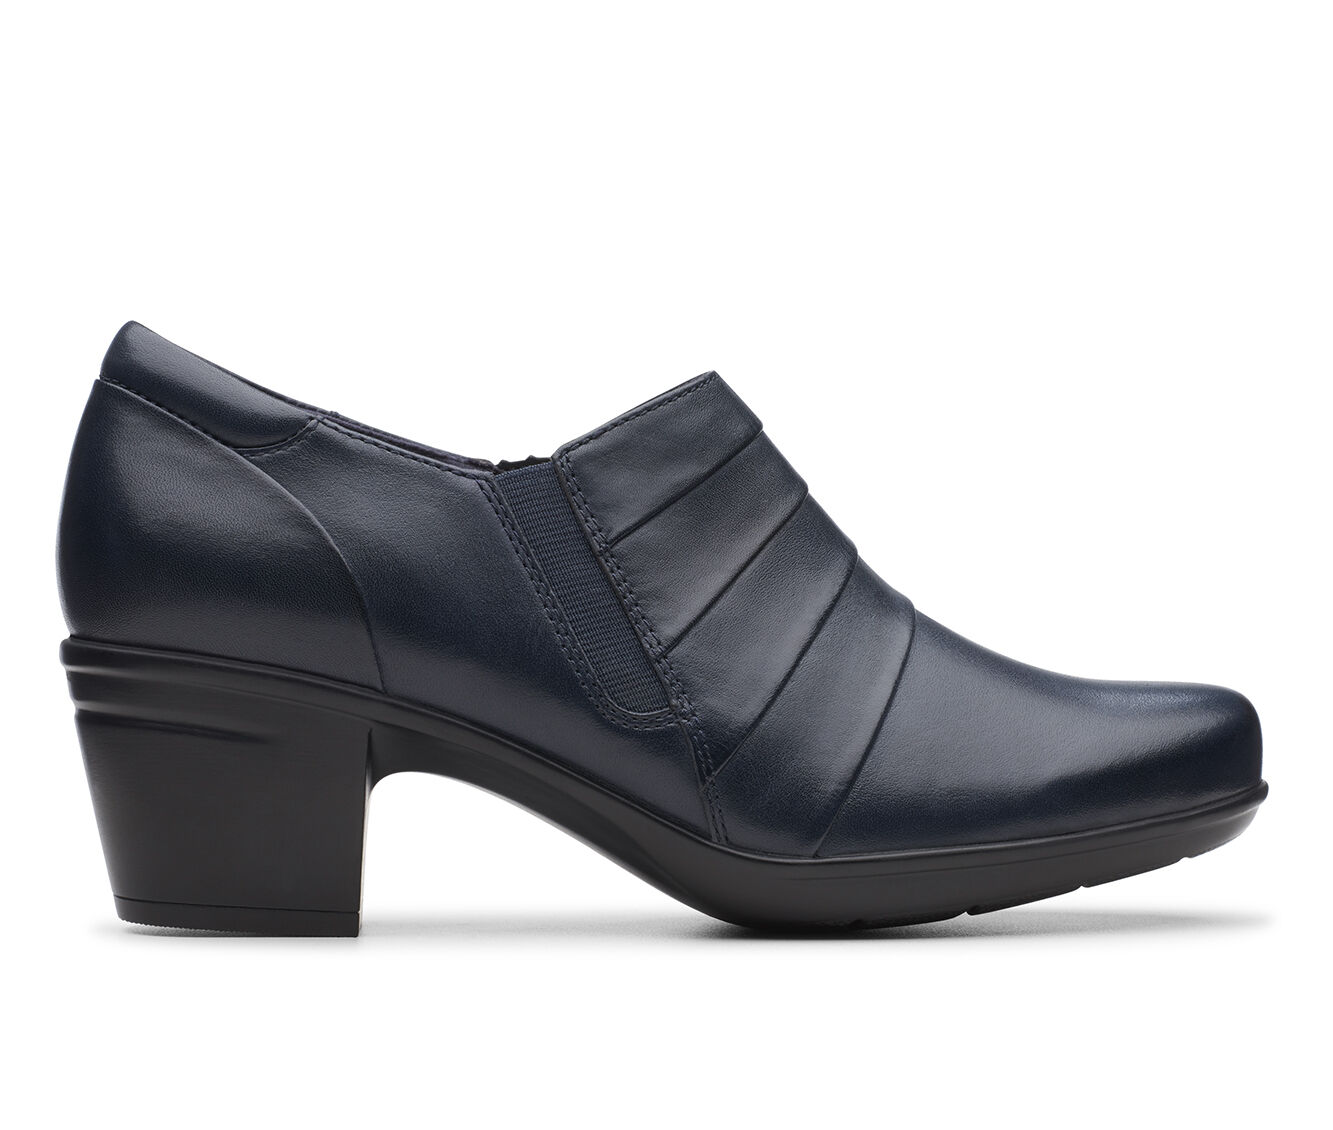 Women's Clarks Emslie Guide Navy Leather